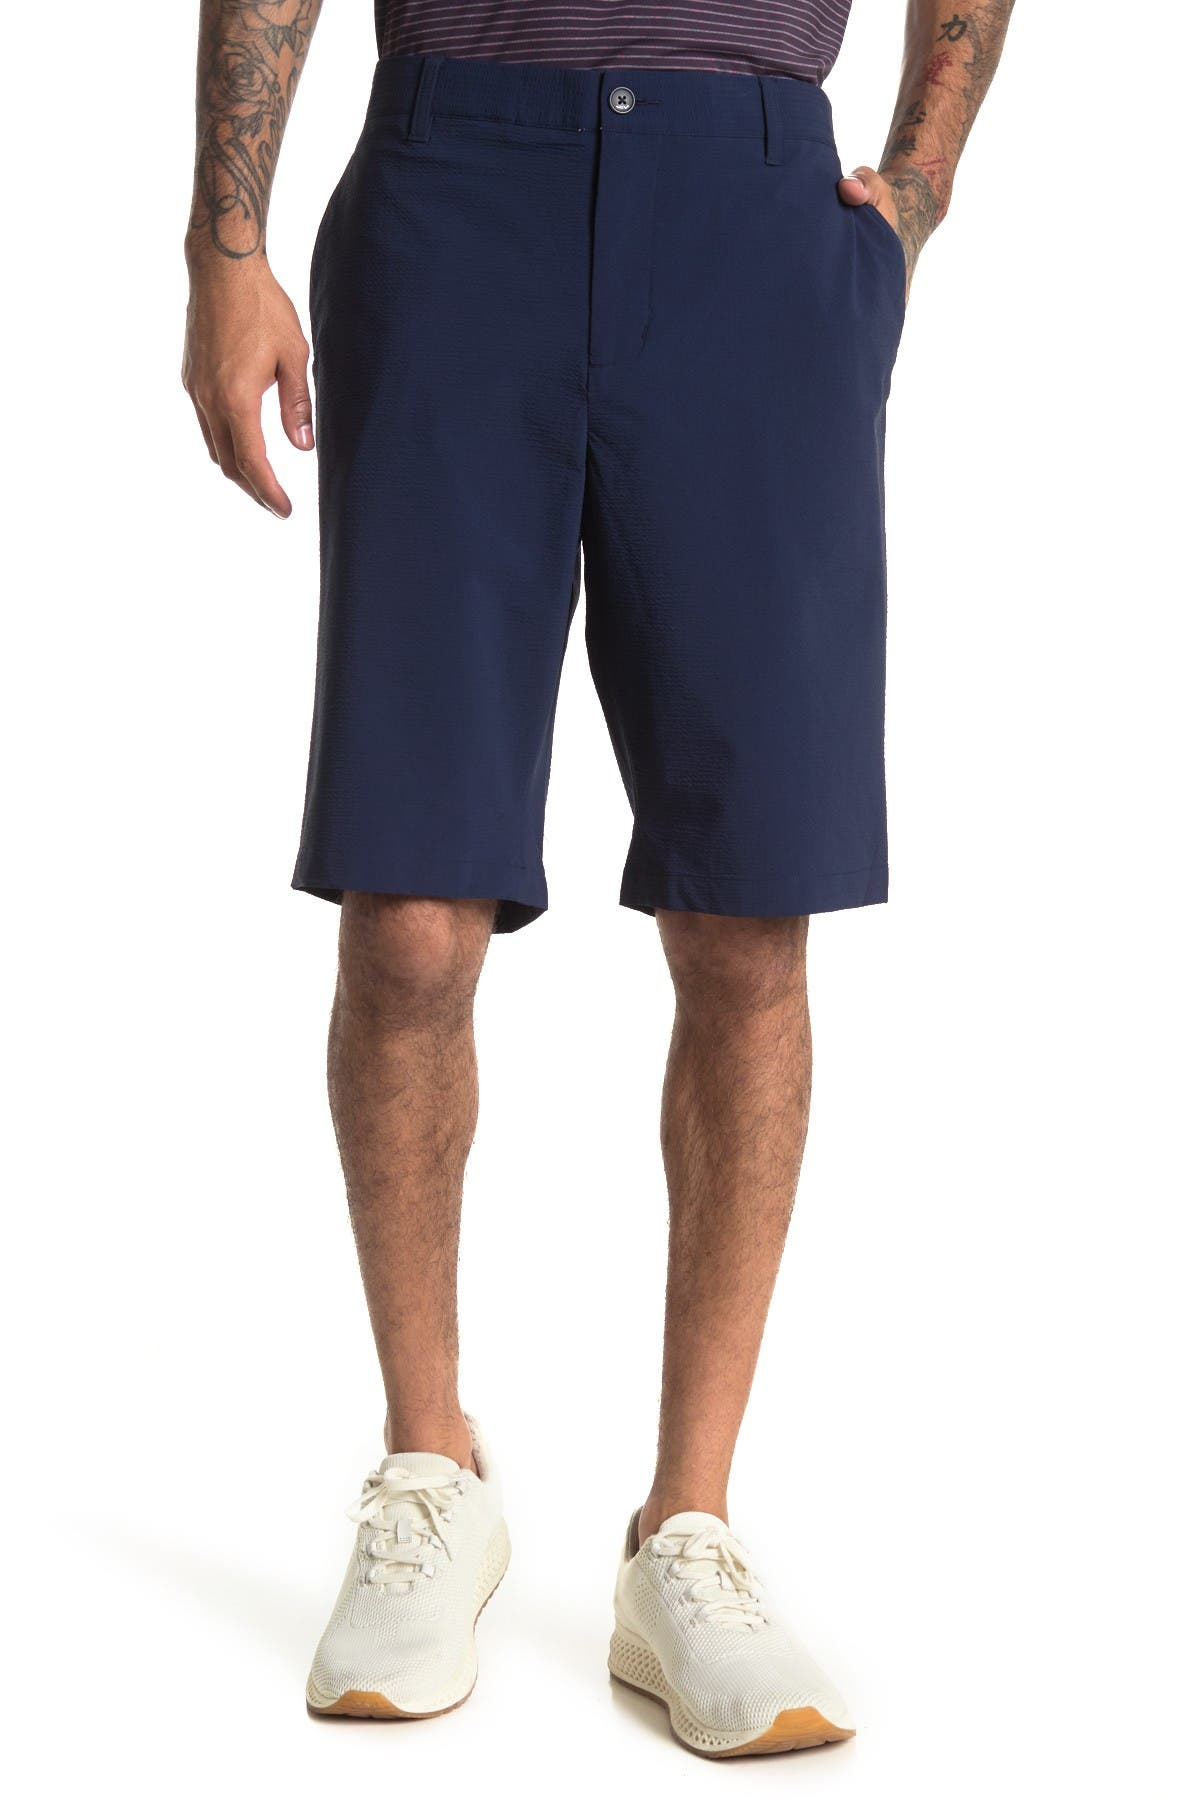 Image of Adidas Golf Adipure Seersucker Shorts